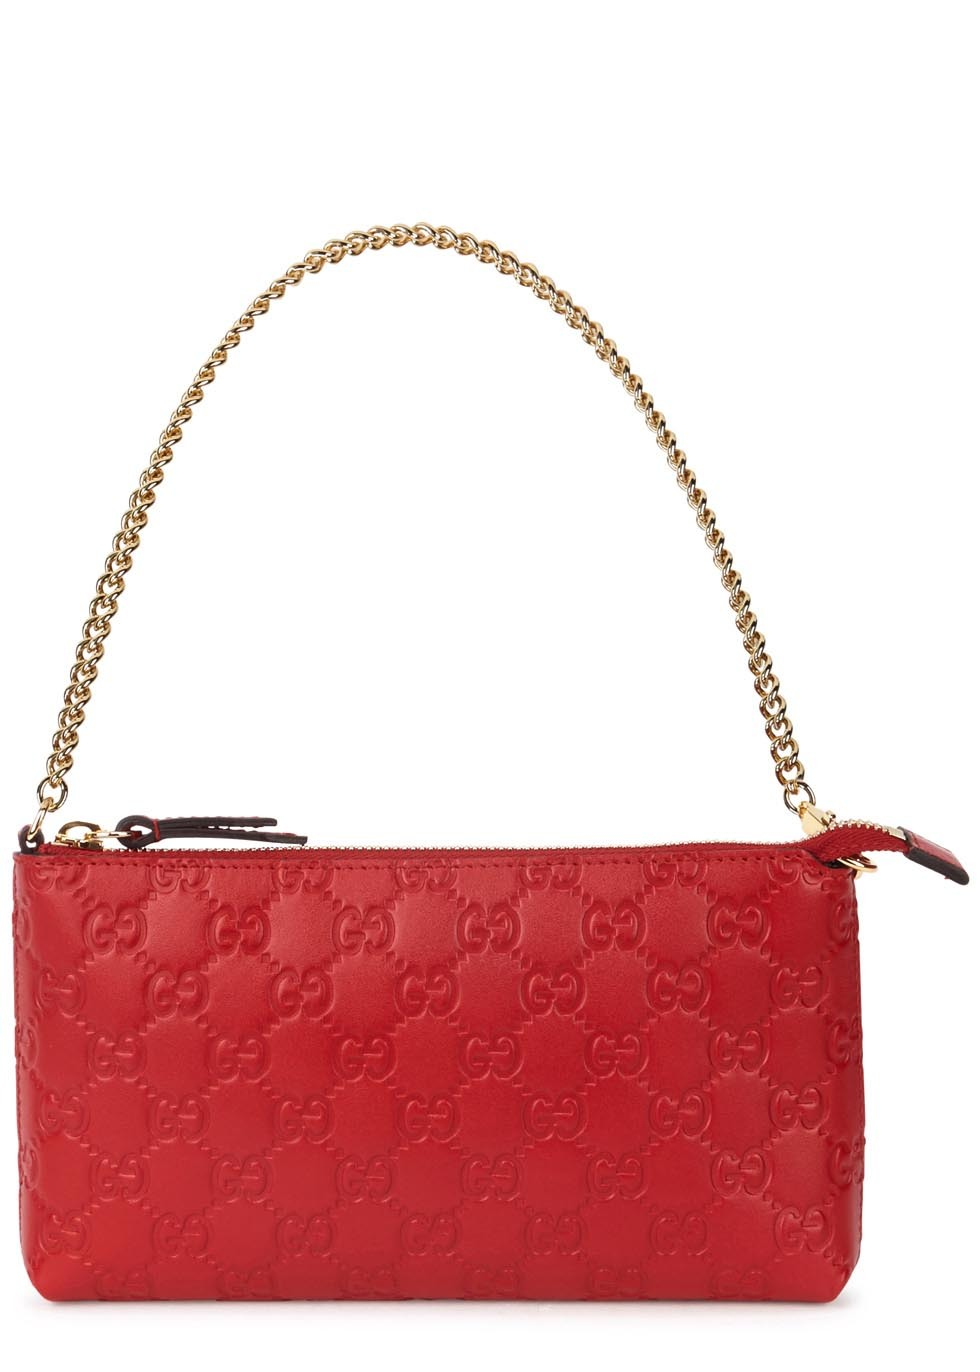 Linea A Gg Red Leather Clutch - predominant colour: true red; occasions: evening, occasion; type of pattern: standard; style: clutch; length: hand carry; size: standard; material: leather; finish: plain; pattern: patterned/print; embellishment: chain/metal; season: s/s 2016; wardrobe: event